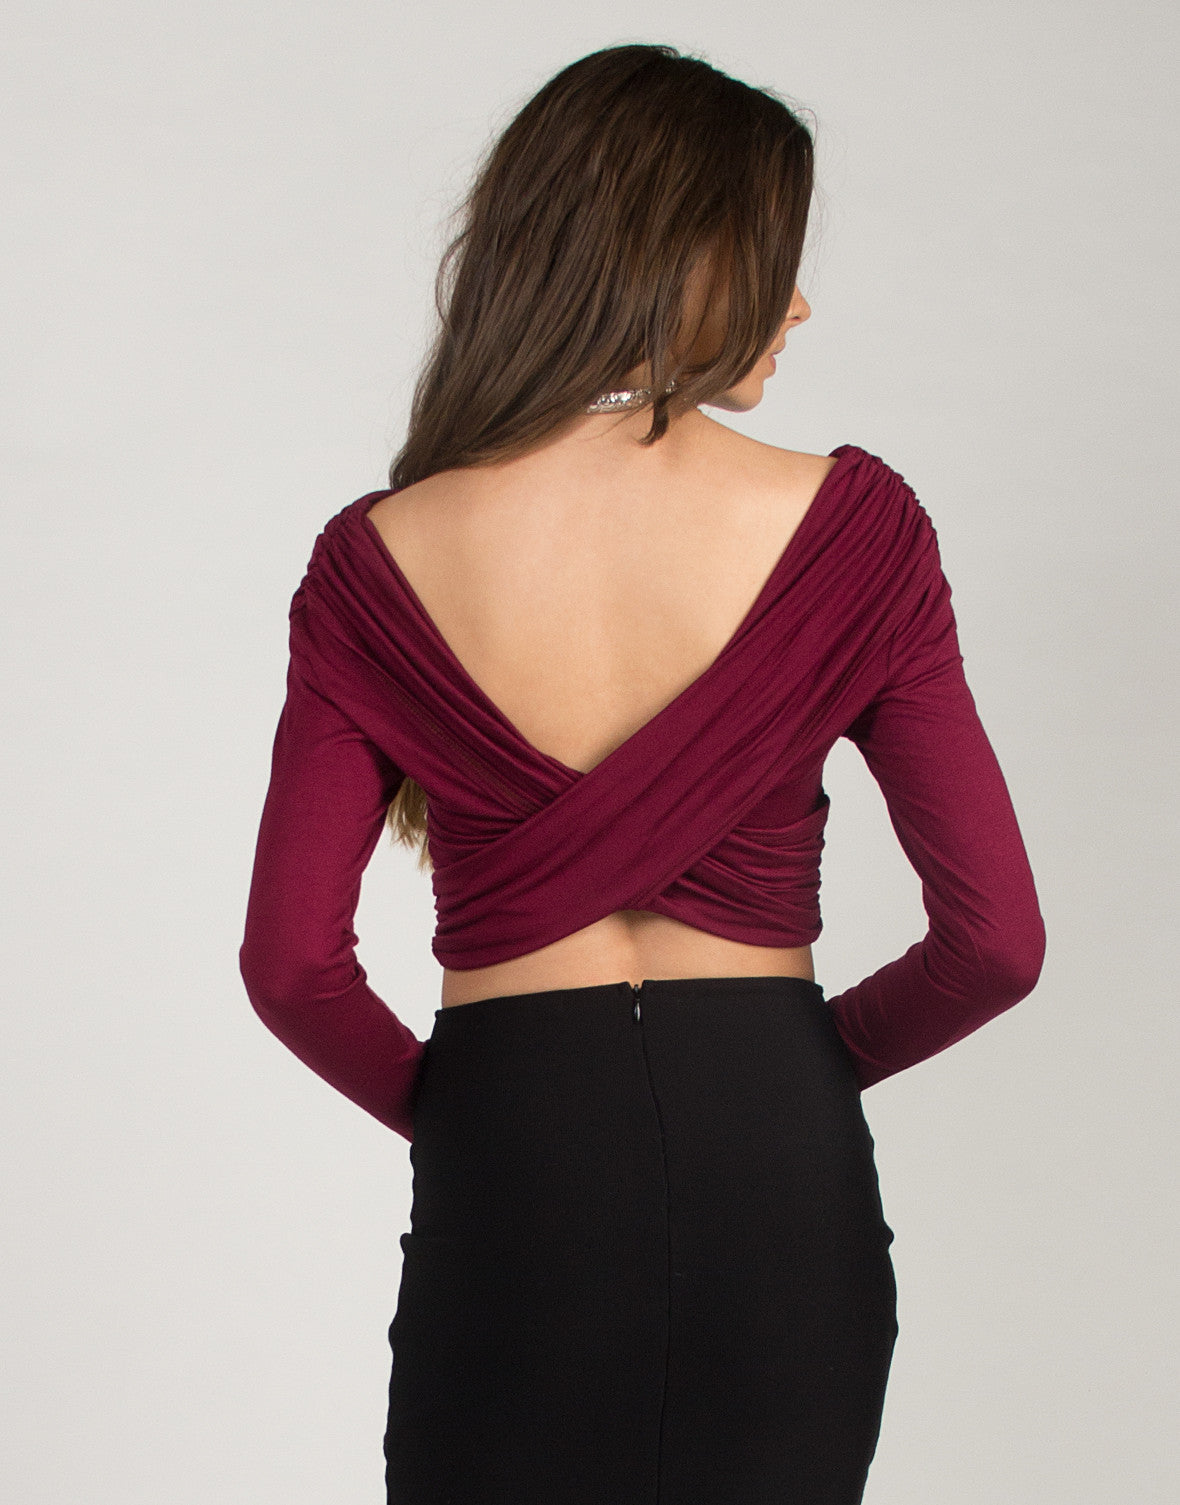 Overlapping Cropped Top - Burgundy - 2020AVE